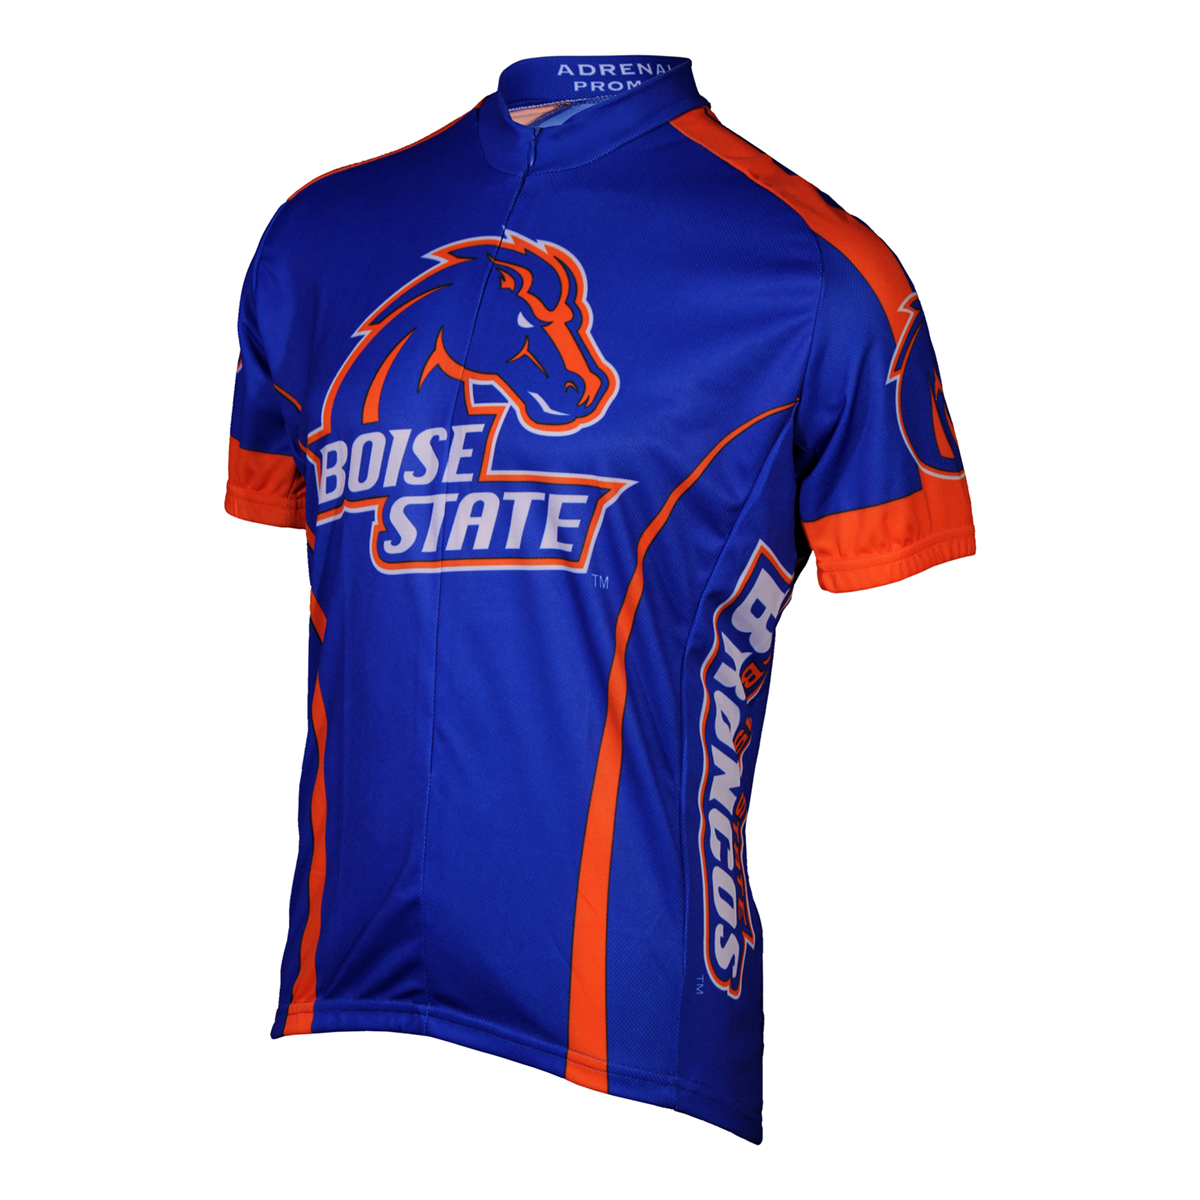 Adrenaline Promotions Boise State University Broncos Cycling Jersey